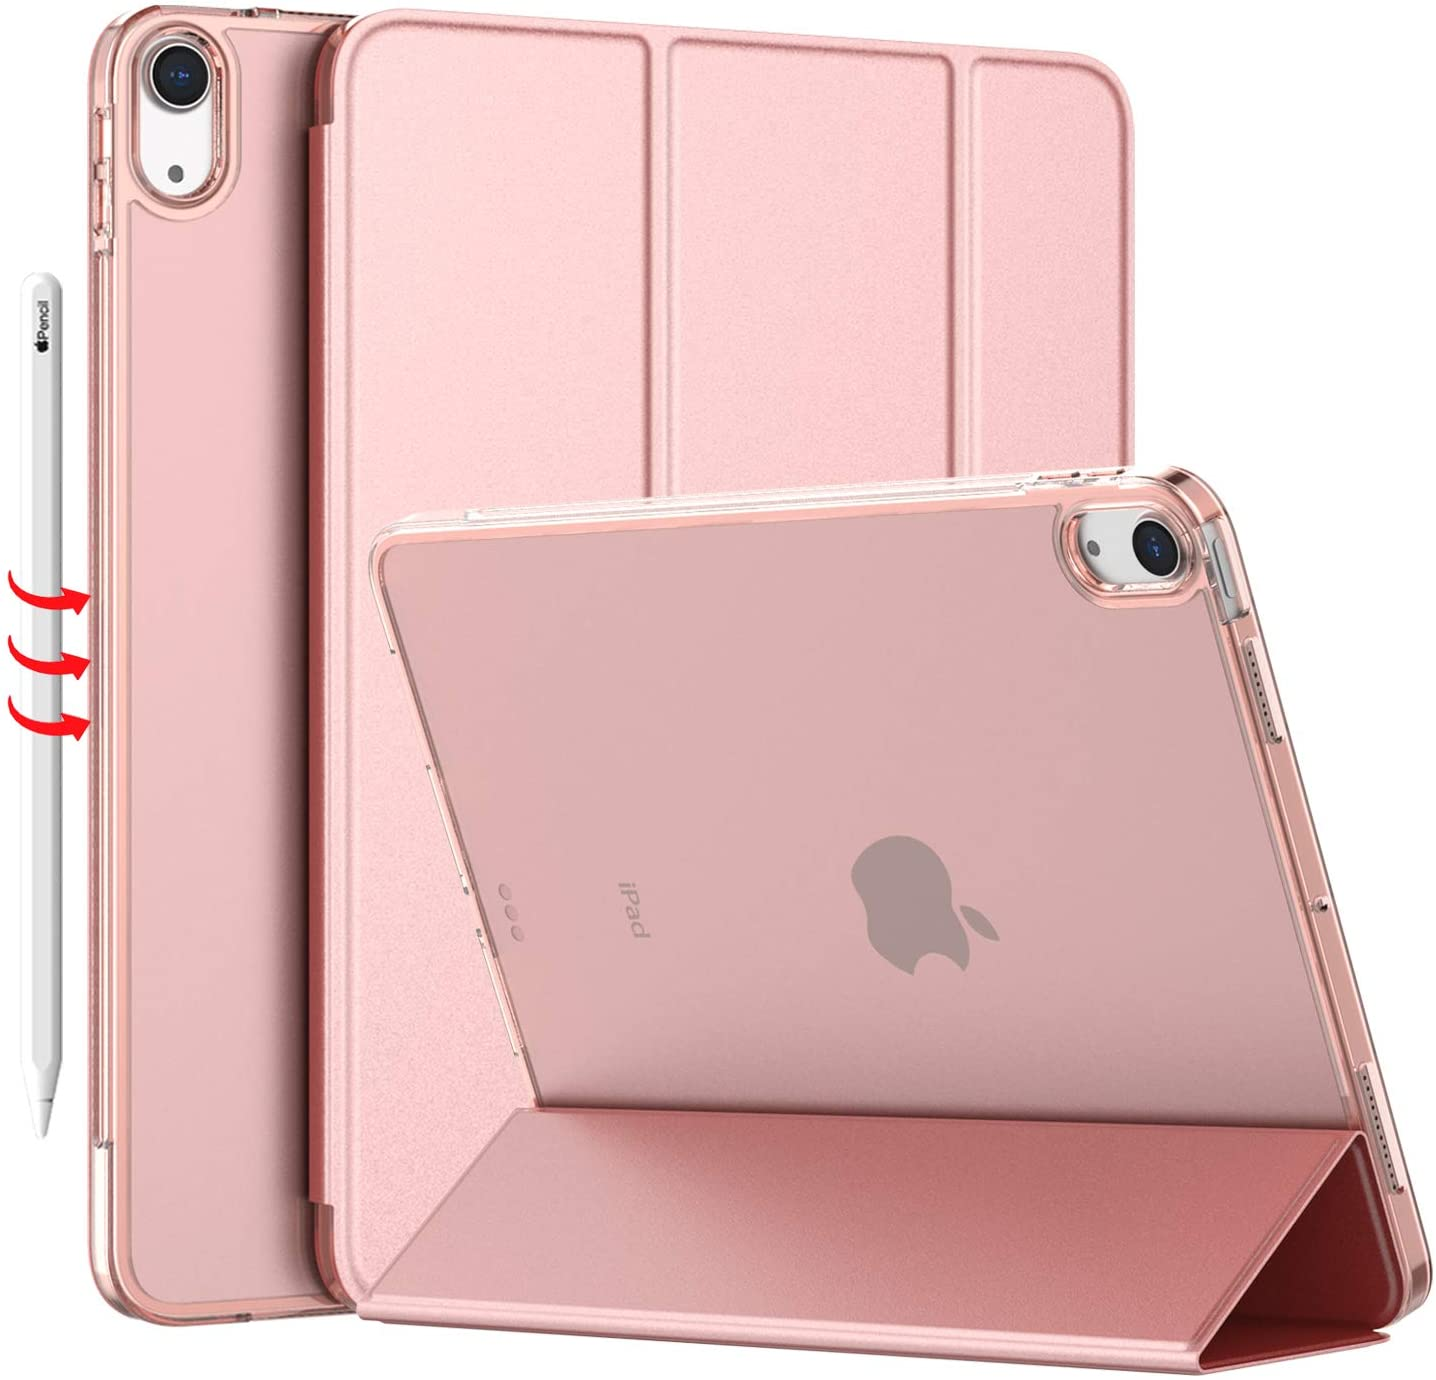 iMieet iPad Air 4 Case 2020 - iPad Air 4th Generation Case 10.9 Inch Lightweight Slim Cover with Translucent Frosted Hard Back [Support Touch ID](Rose Gold)